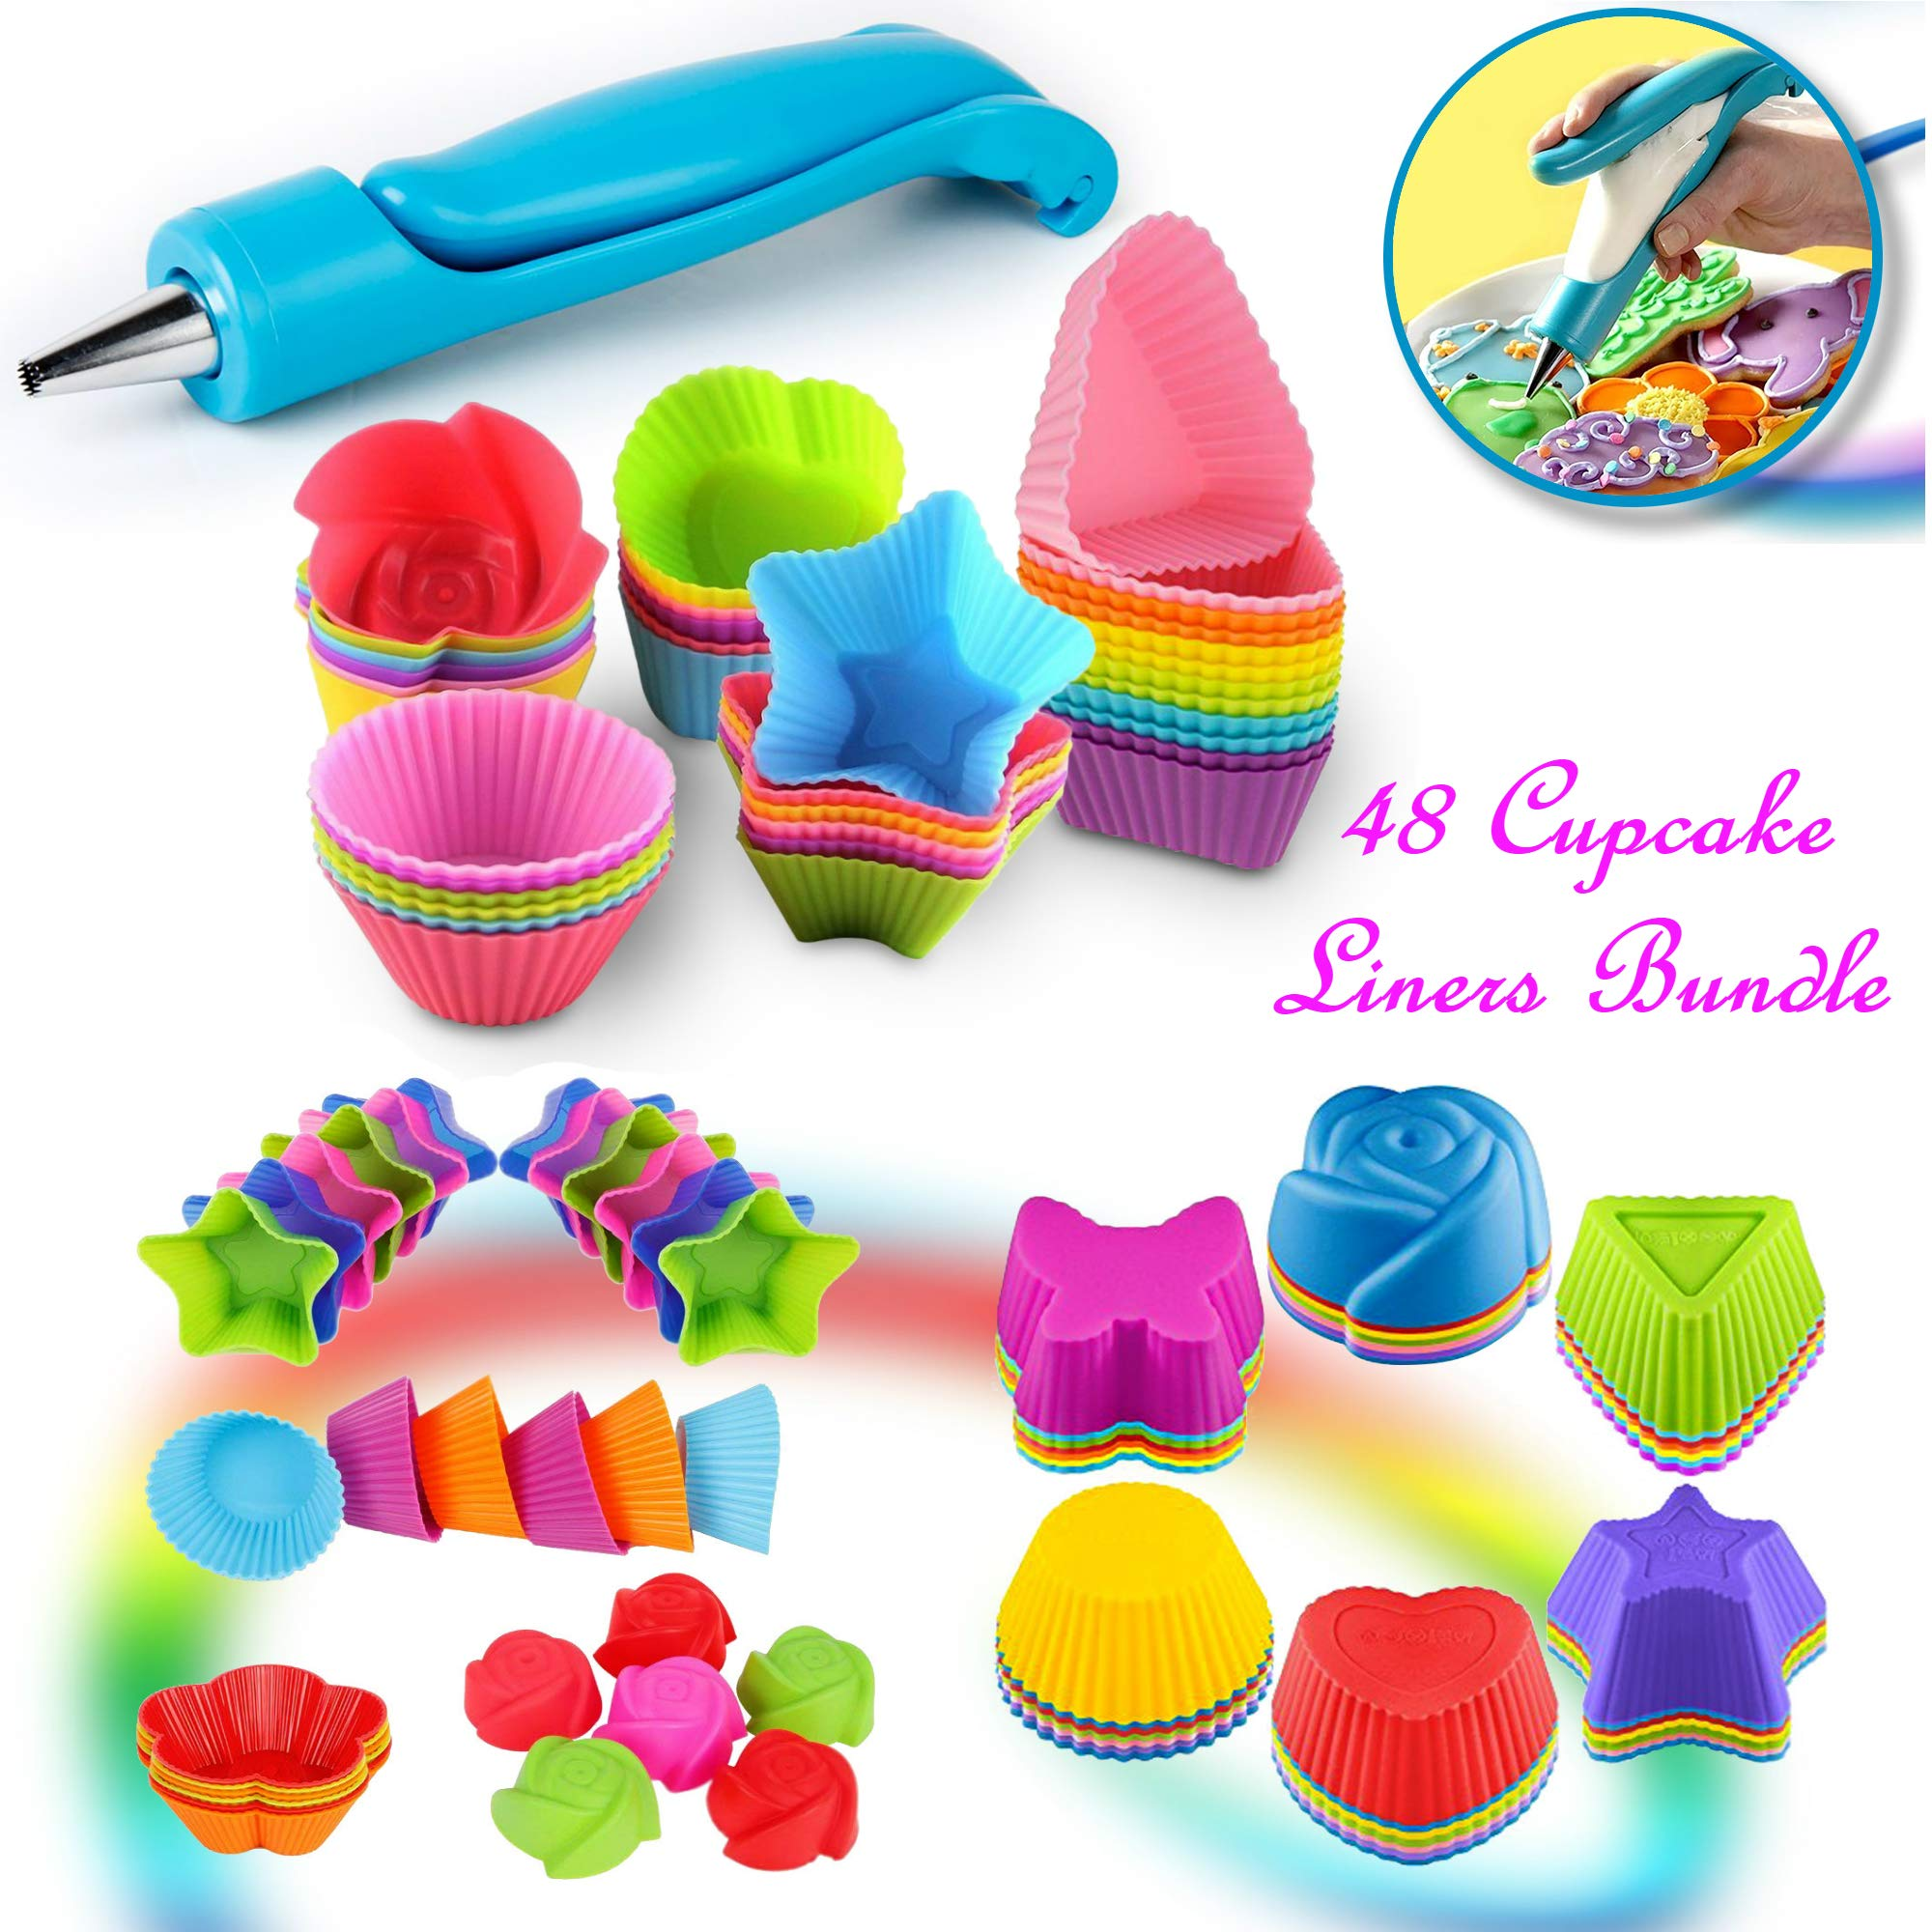 Cupcake Baking Cup Molds Bundle Easy Clean Pastry Liners 48 Nonstick Reusable Silicone Muffin Molds with Icing Pen Cupcake & Cake Decorating Pen Set by Kitchen Krush (Image #1)